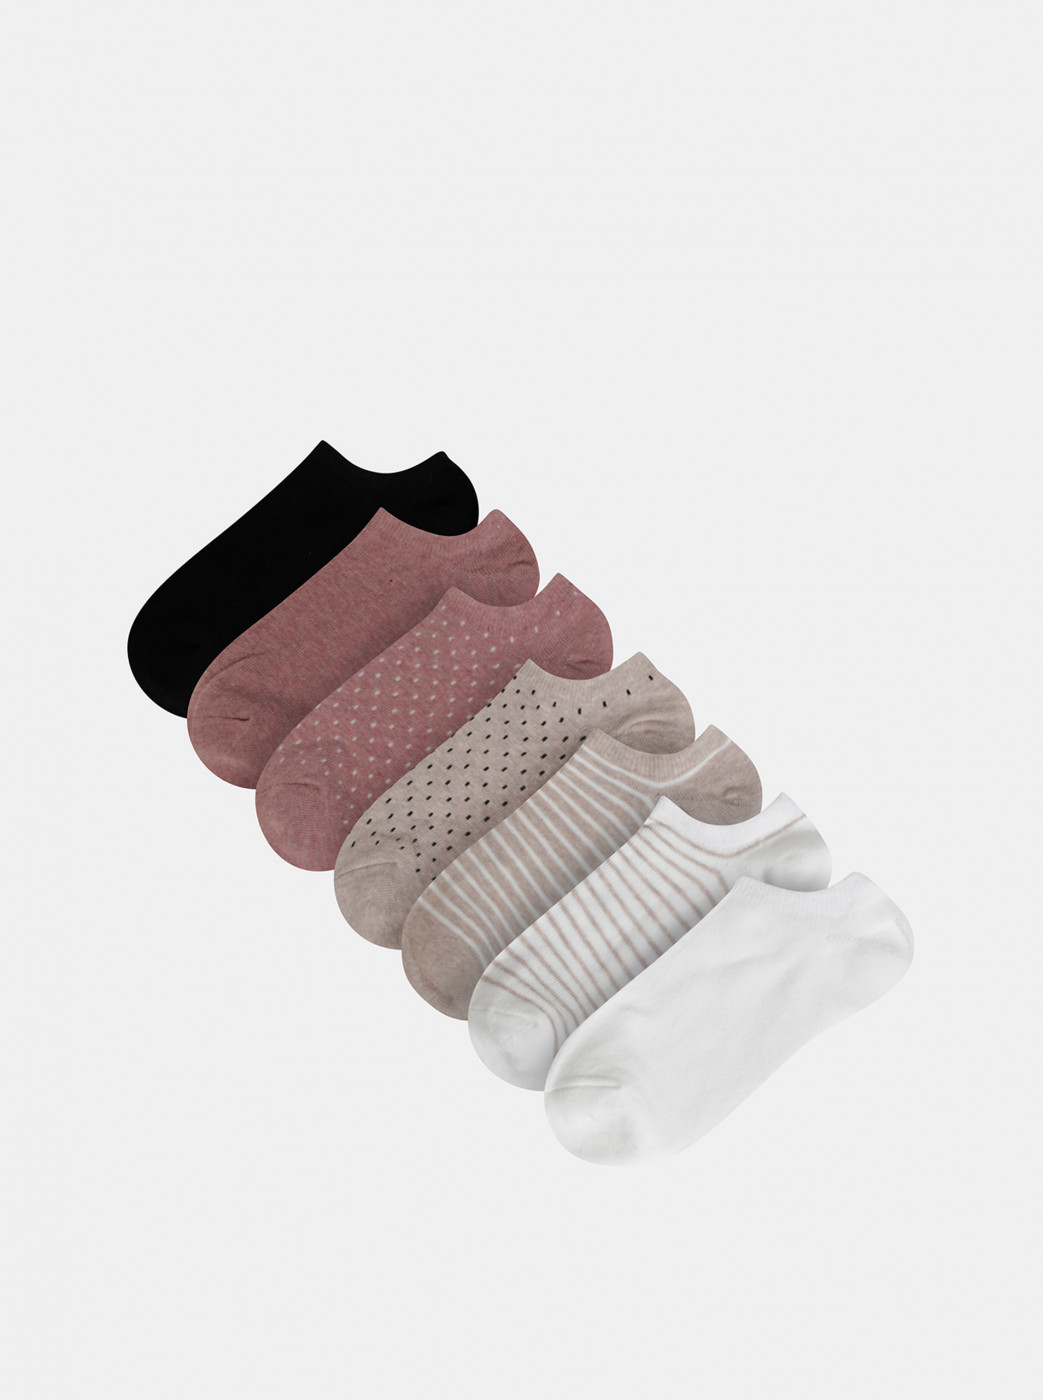 Set of seven pairs of patterned low socks in white, beige, pink and black TALLY WEiJL Flip